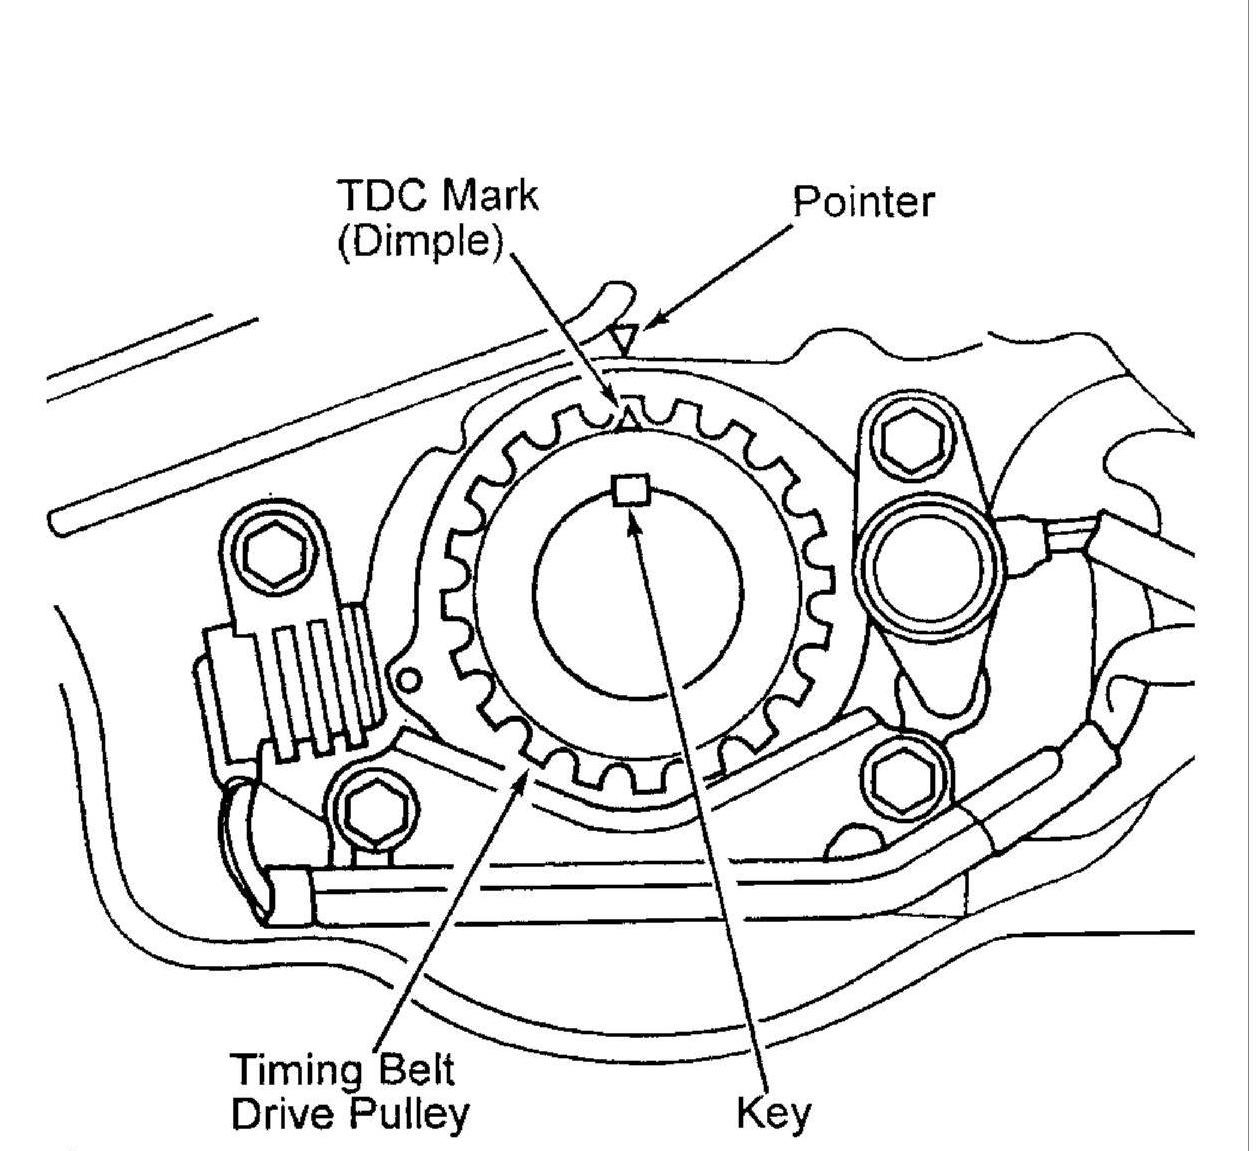 could i get a diagram of the timing marks and aux belt for a 2002 honda accord 2 3 engine  thank